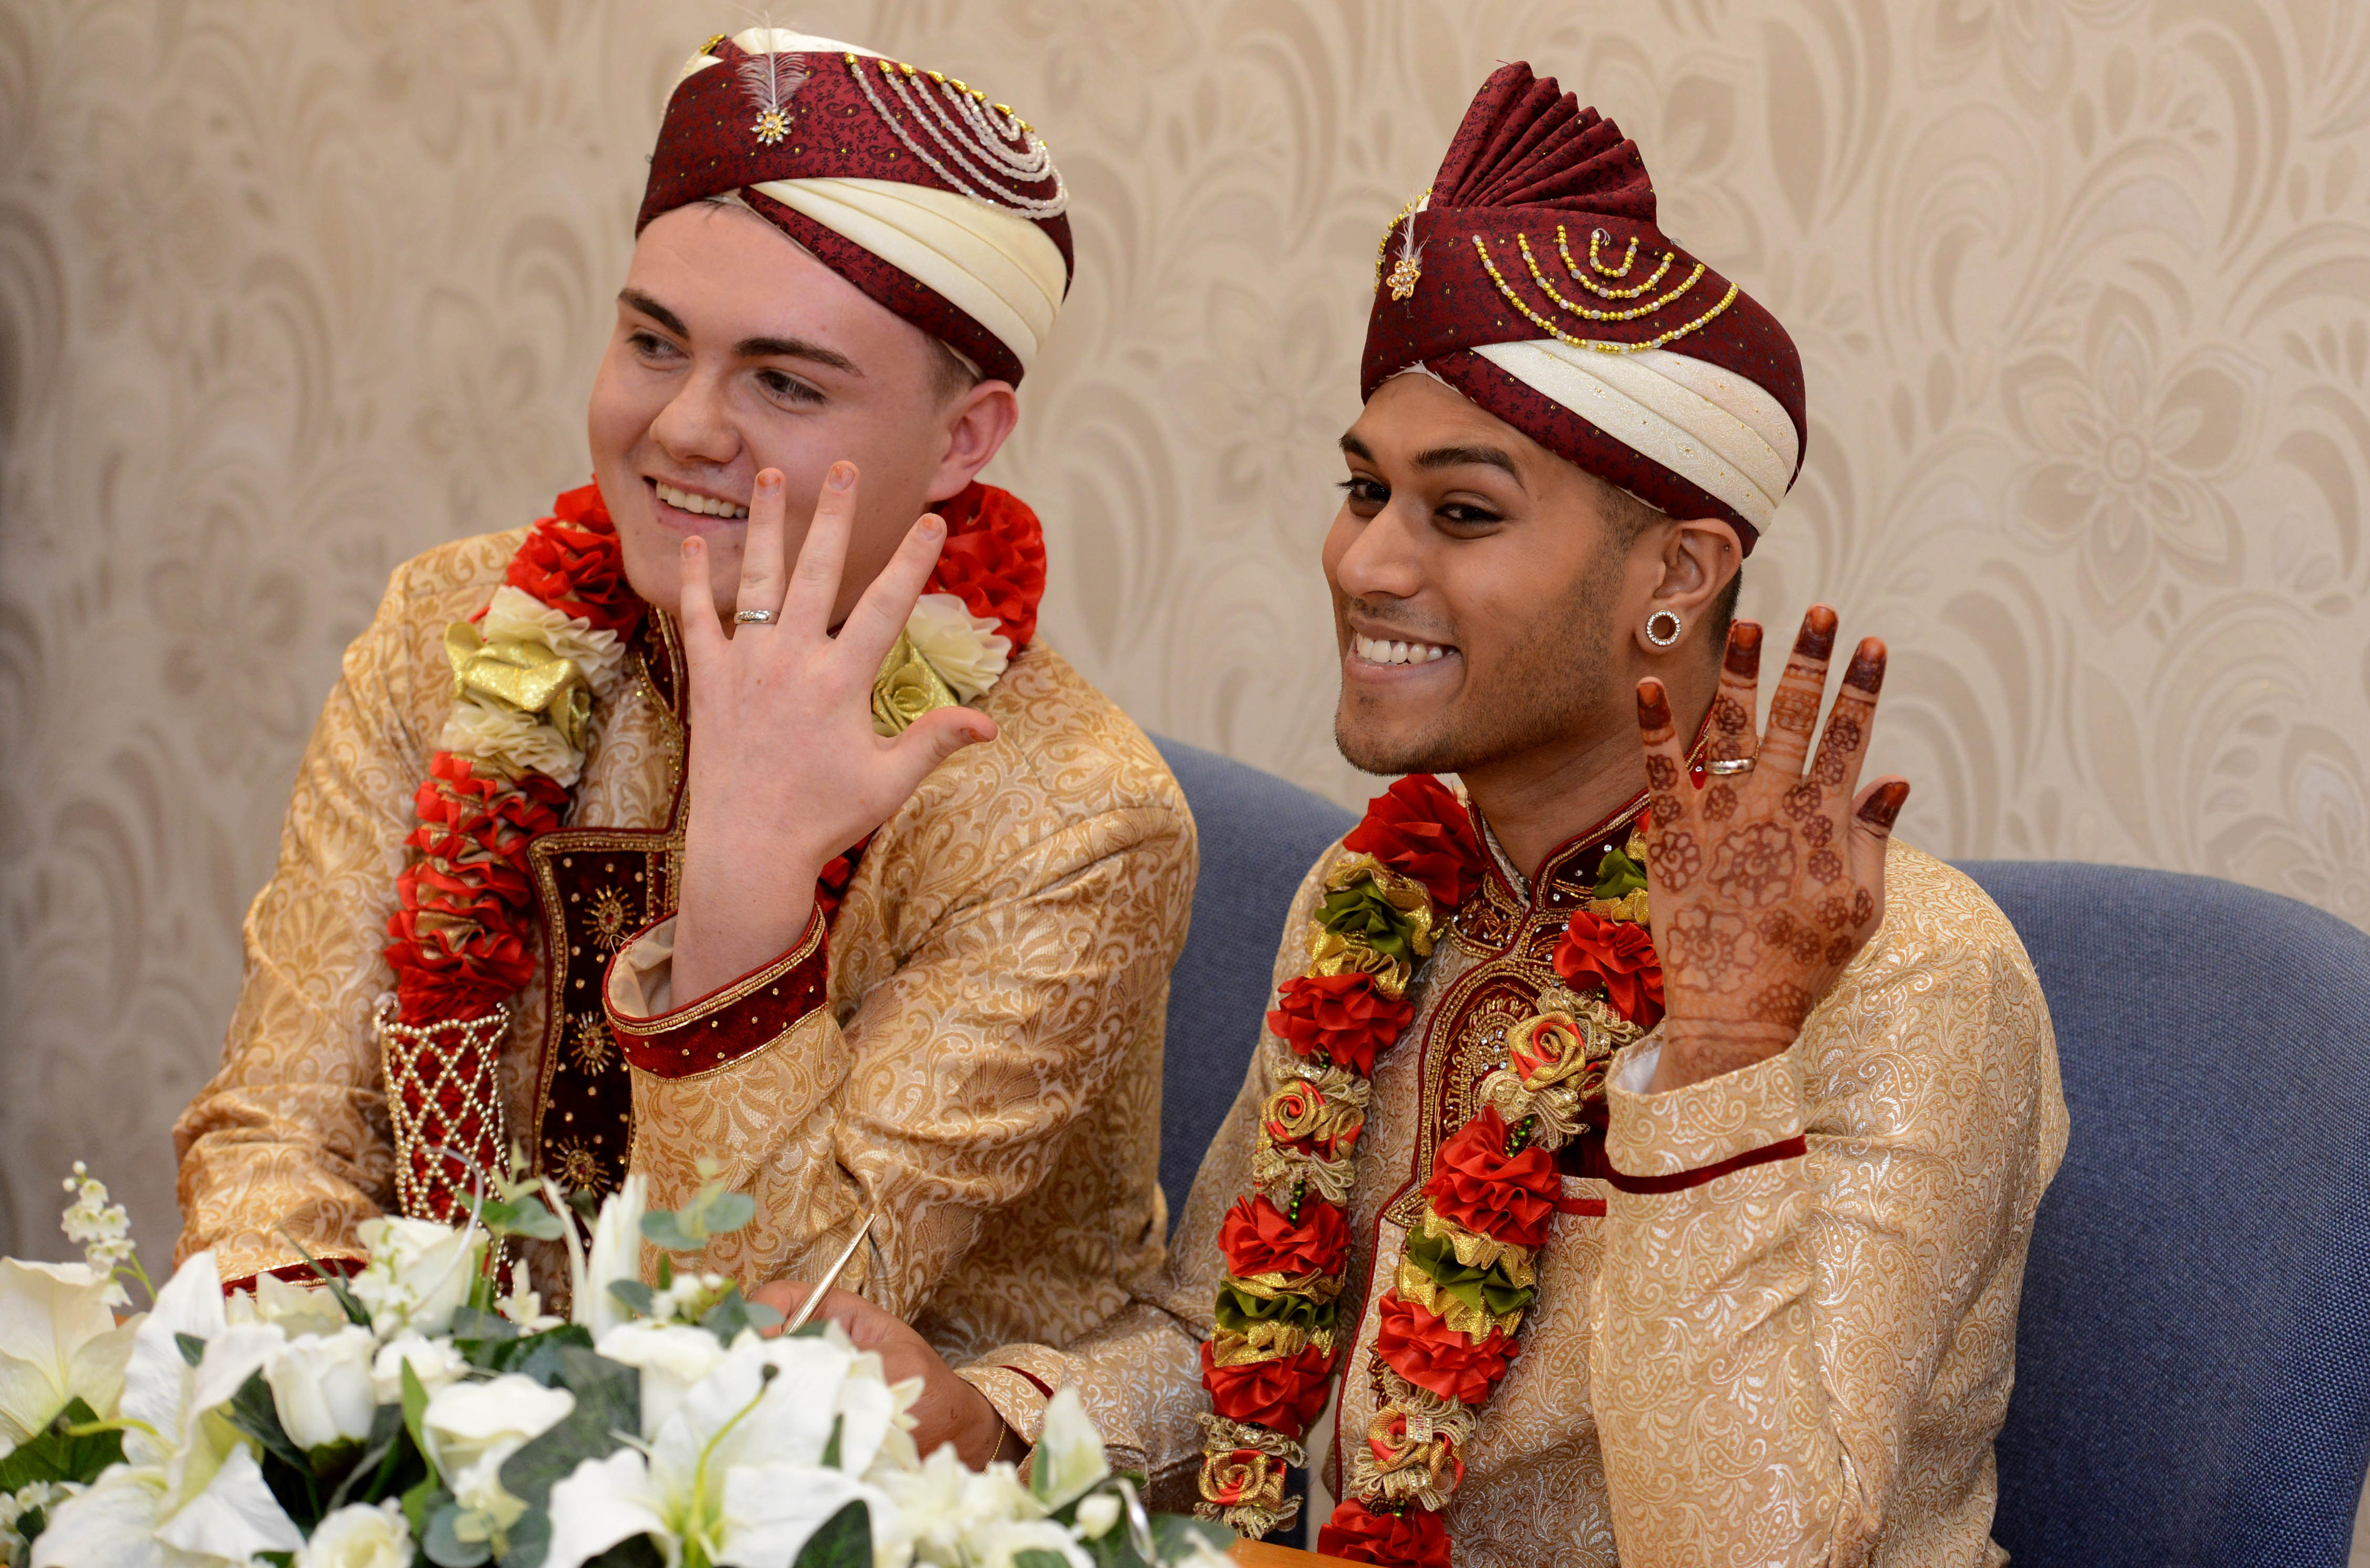 WATCH: Delighted Walsall couple in UK's first gay Muslim